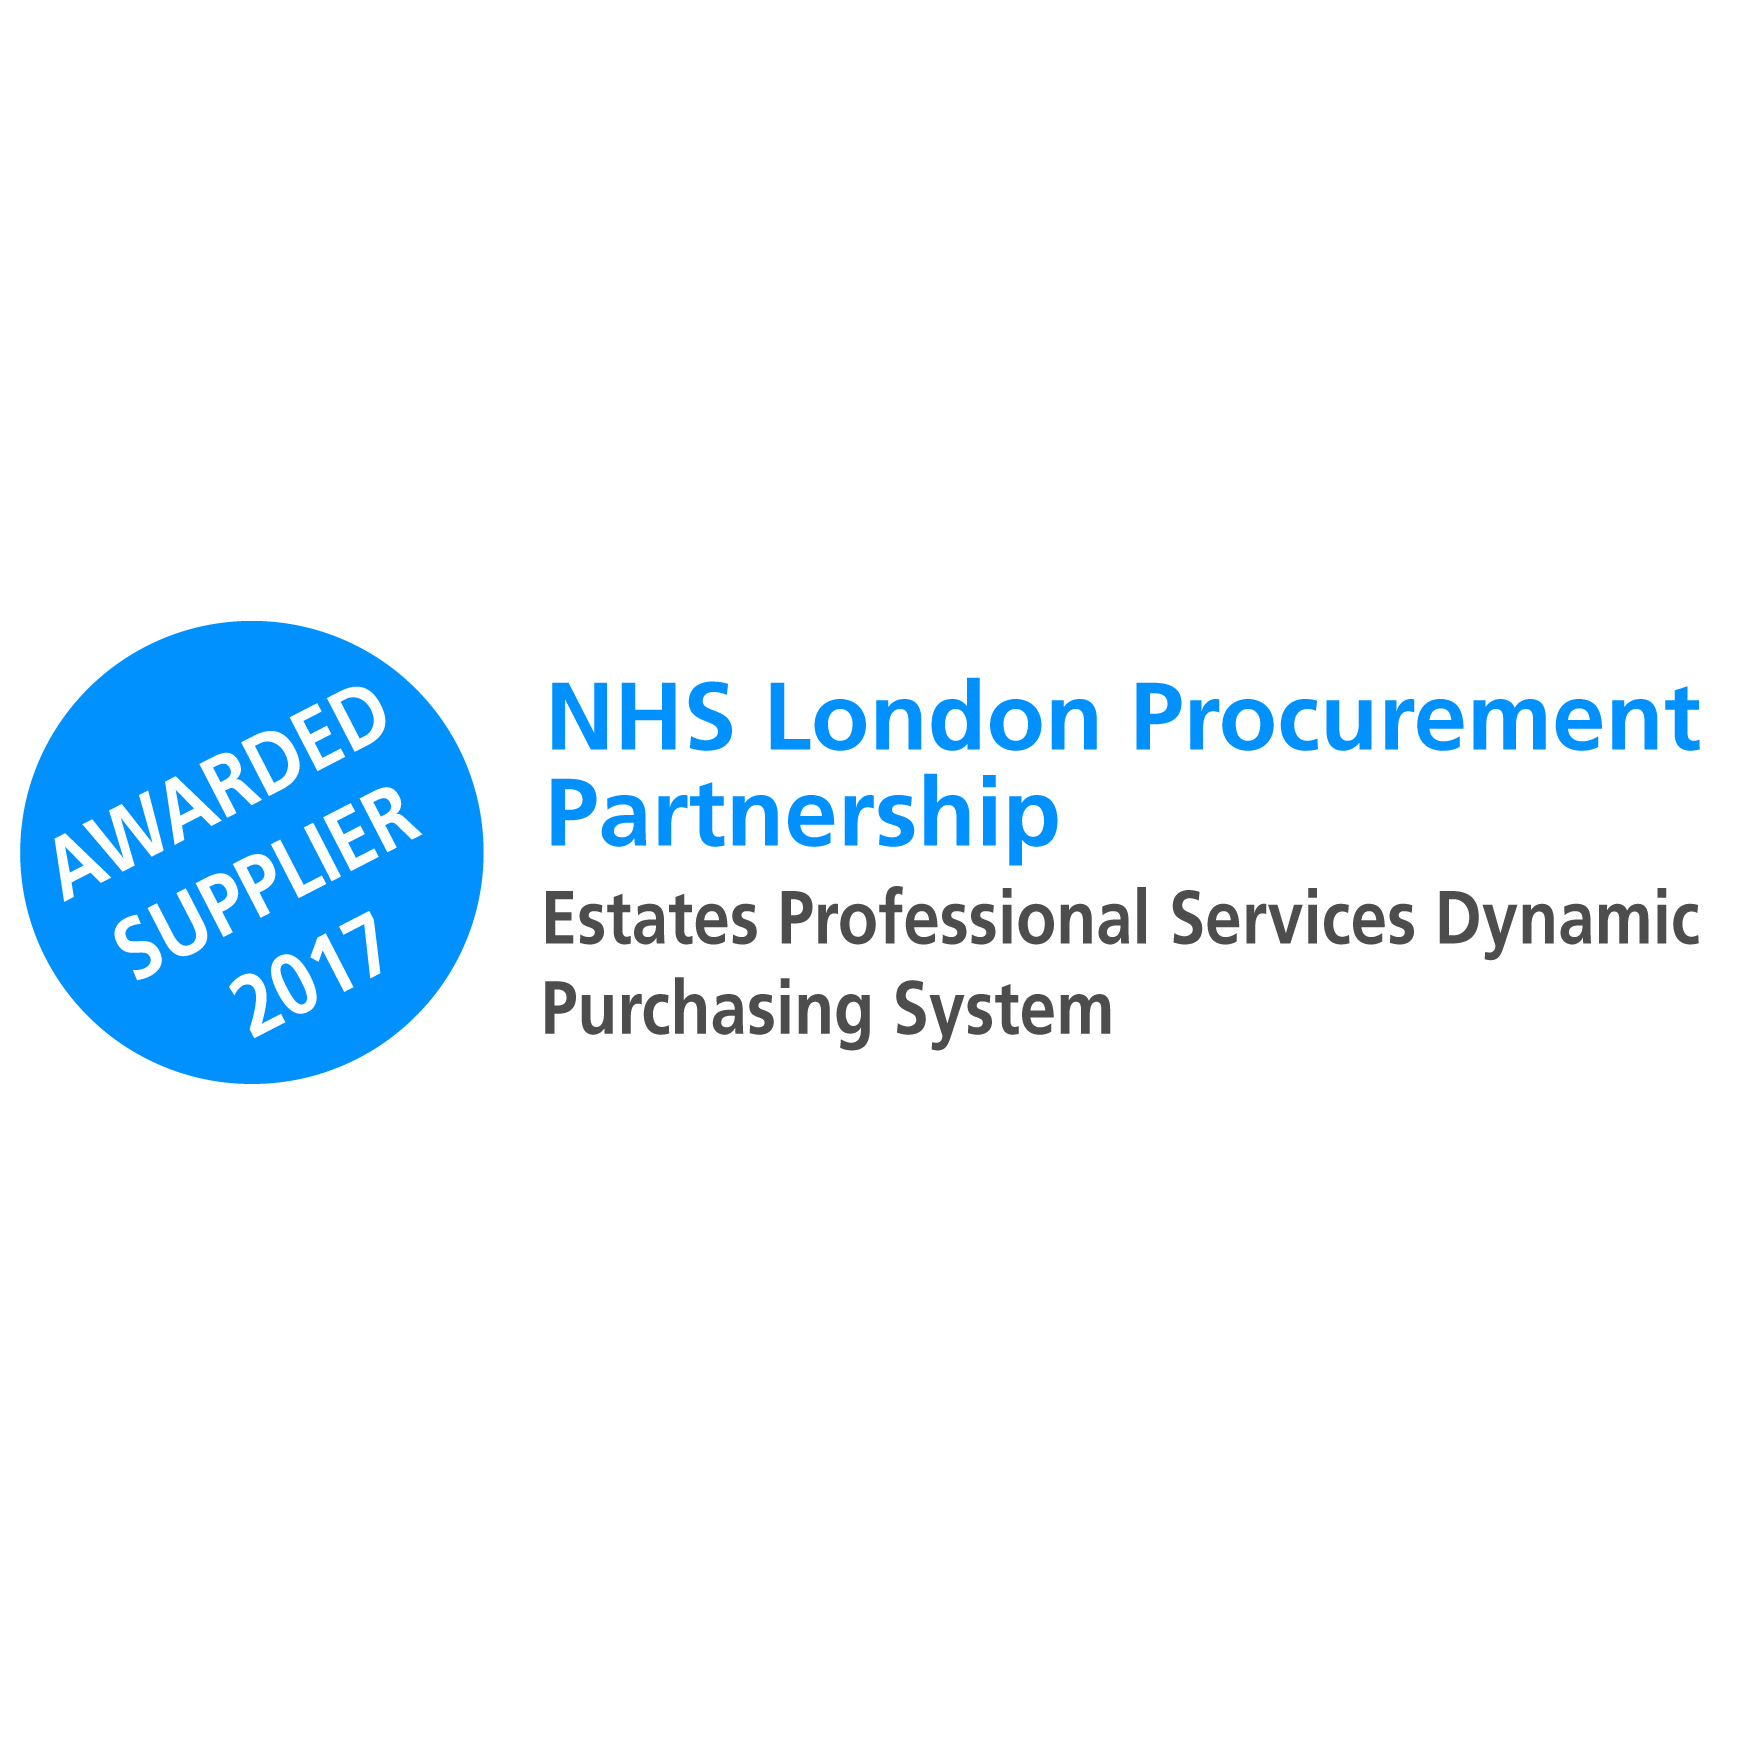 The Ecology Consultancy is now on the NHS London Procurement Partnership's Dynamic Purchasing System (DPS) for Estates Professional Services